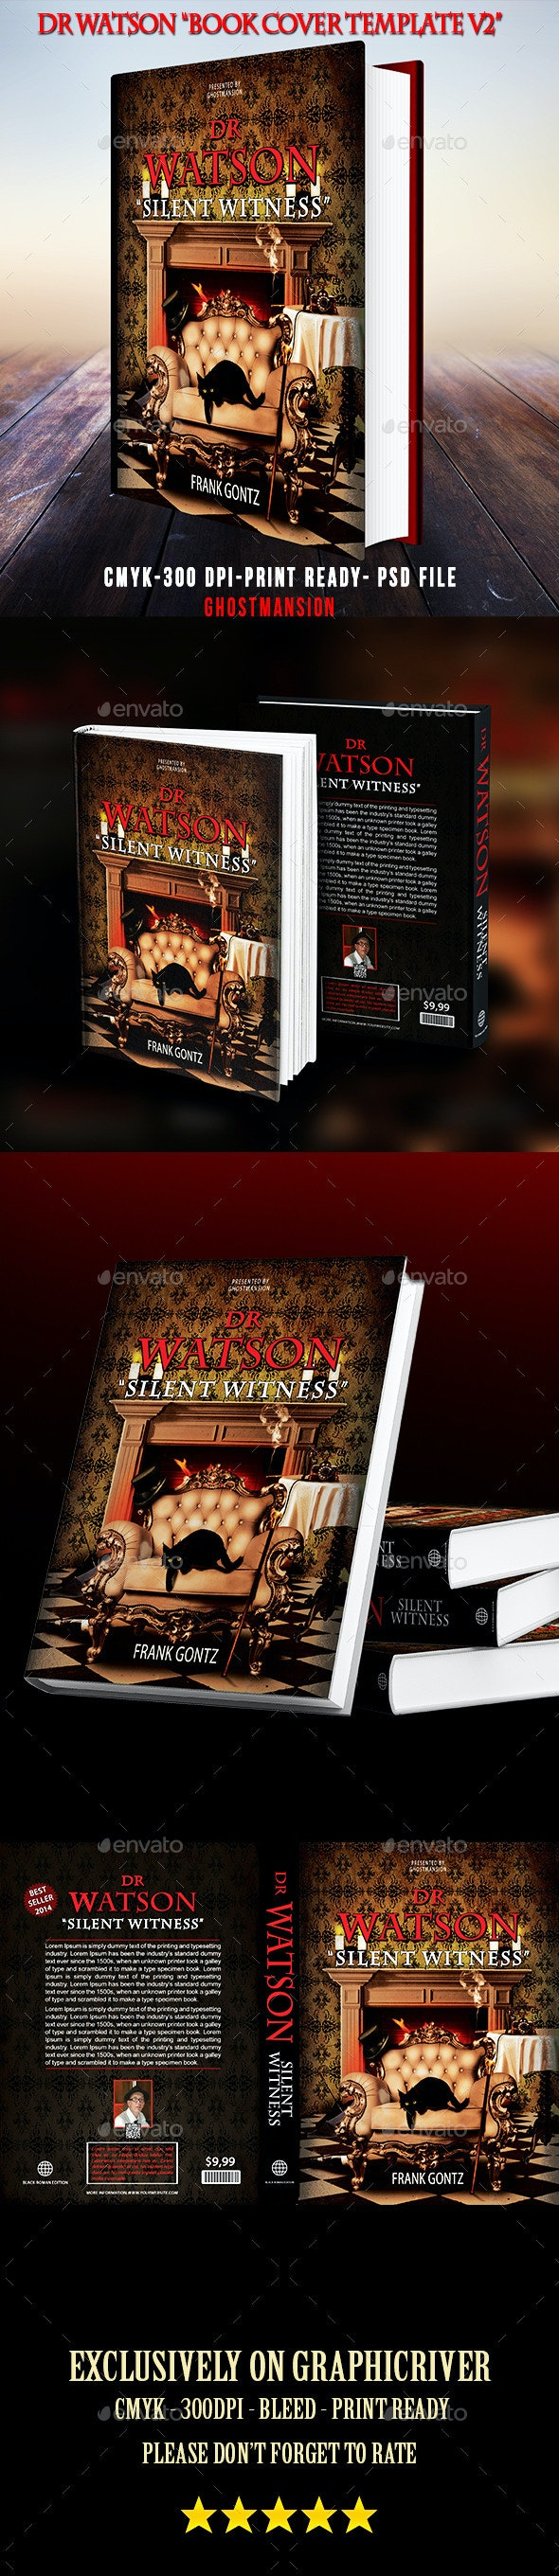 Book Cover Template PSD V2 - Miscellaneous Events